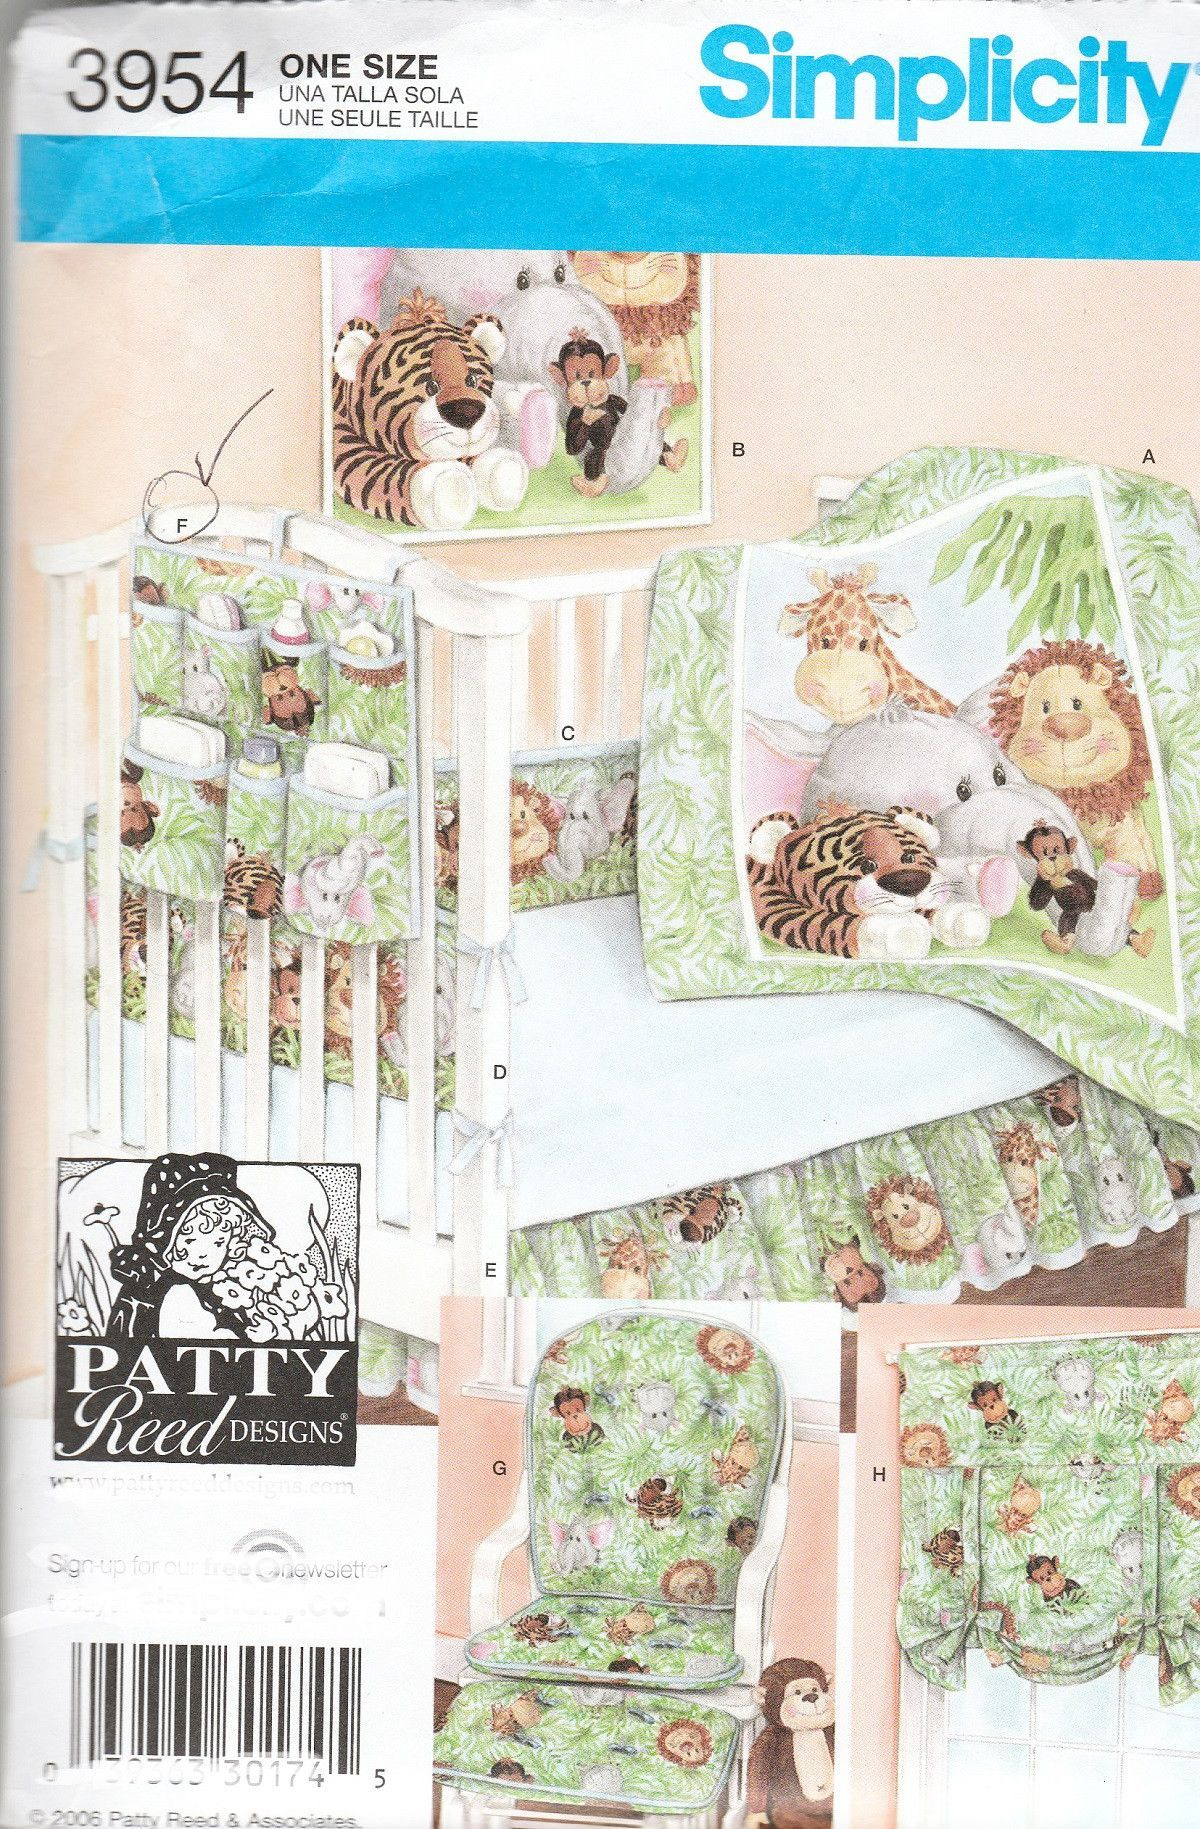 Baby Nursery Accessories Sewing Patterns Simplicity 3954 Quilt Wallhanging Crib Caddy Per Sheets More